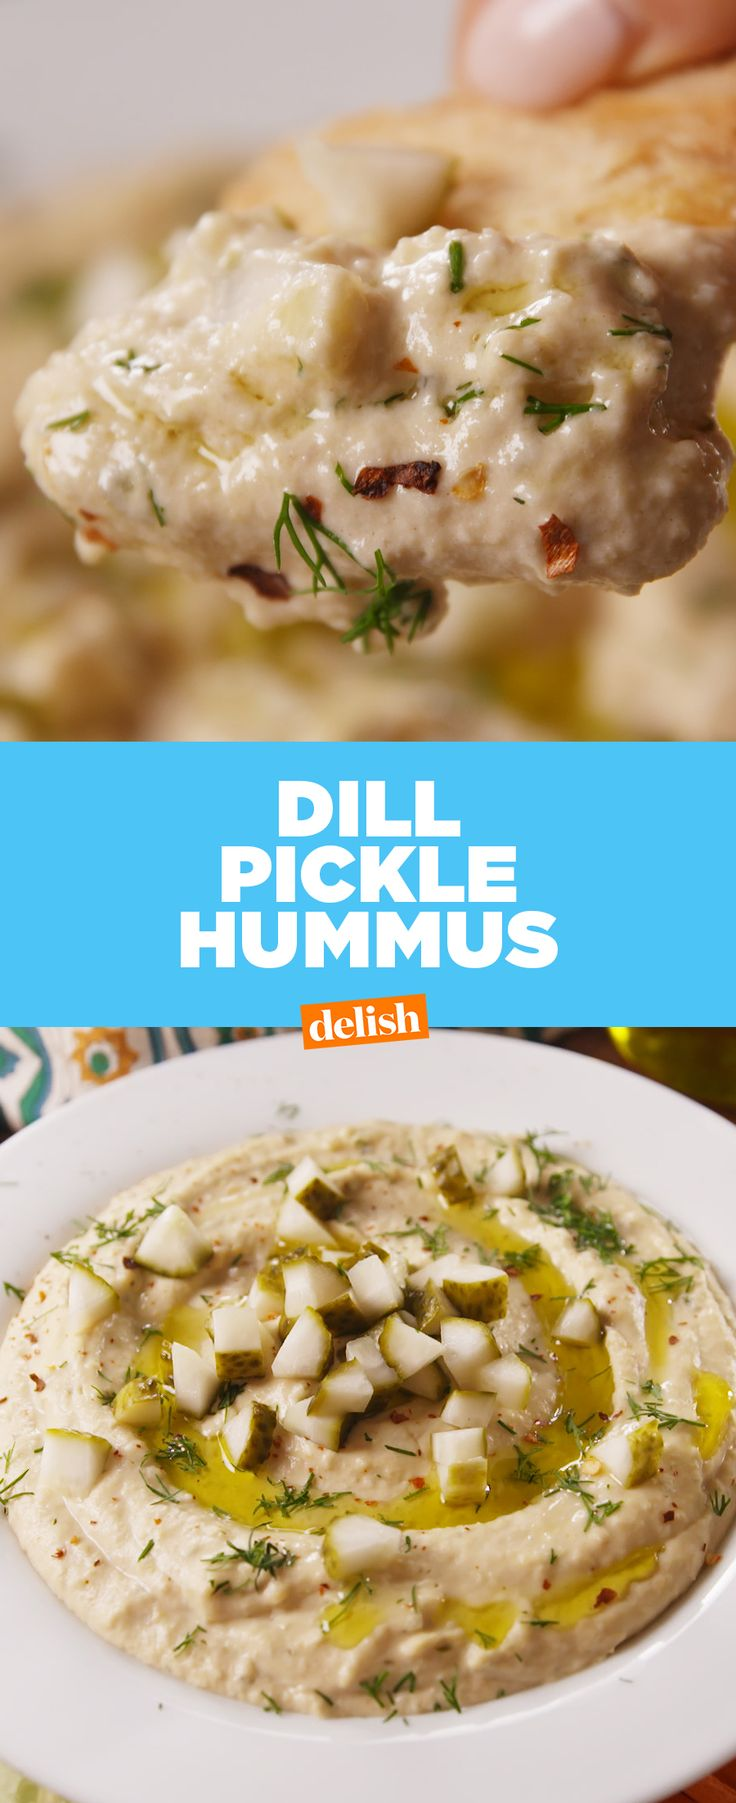 Pickle lovers, this hummus is literally screaming your name. Get the recipe from Delish.com.